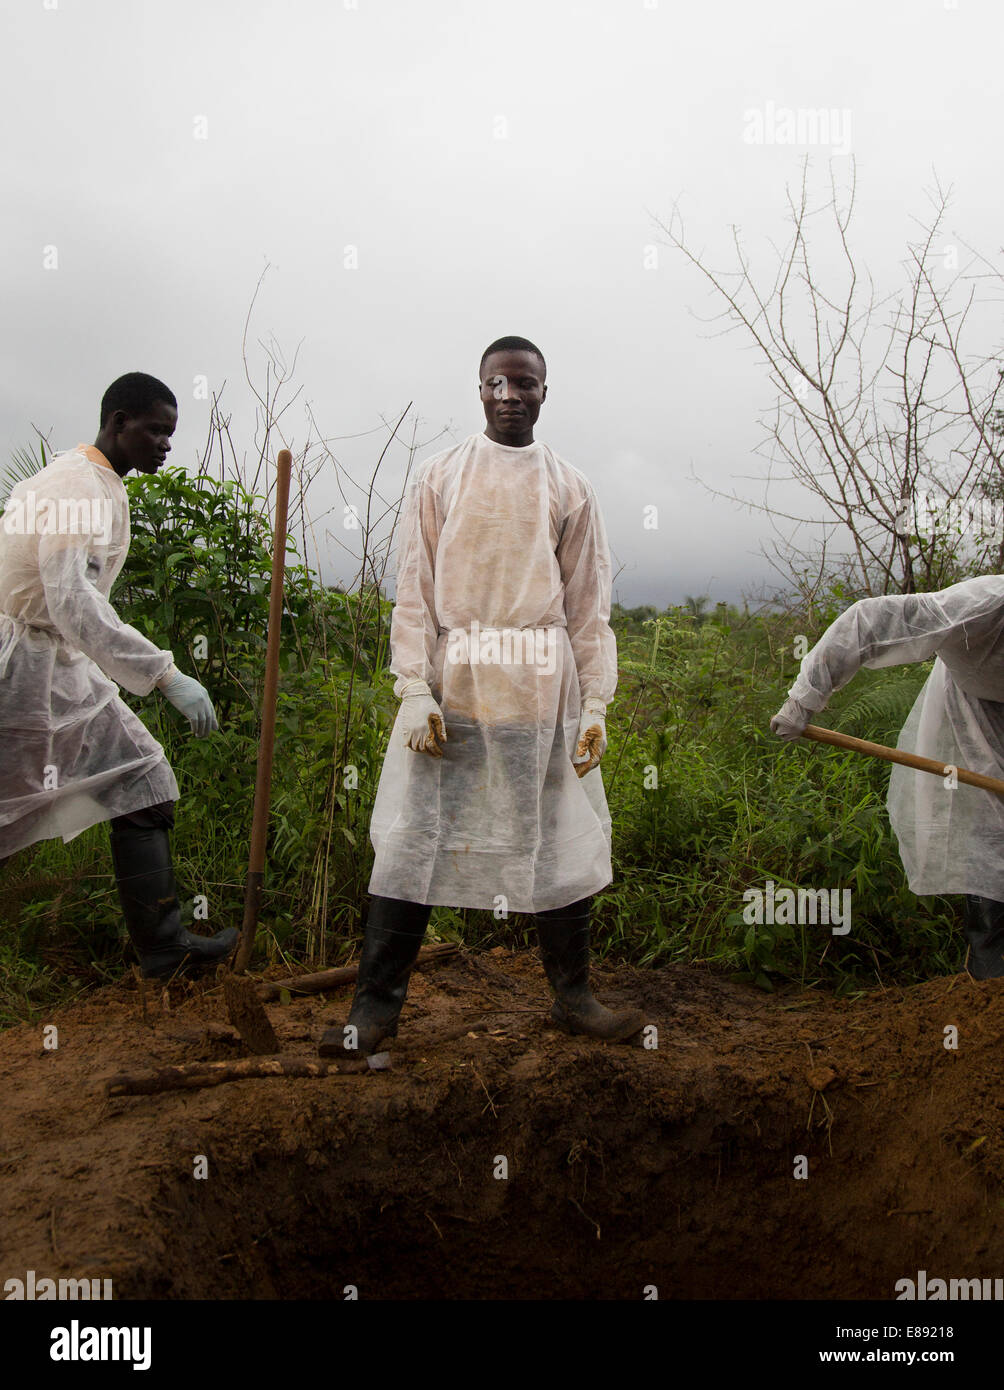 Burial team buries an Ebola victim. Unification Town, Liberia 2014-08-30 11:44:54 - Stock Image